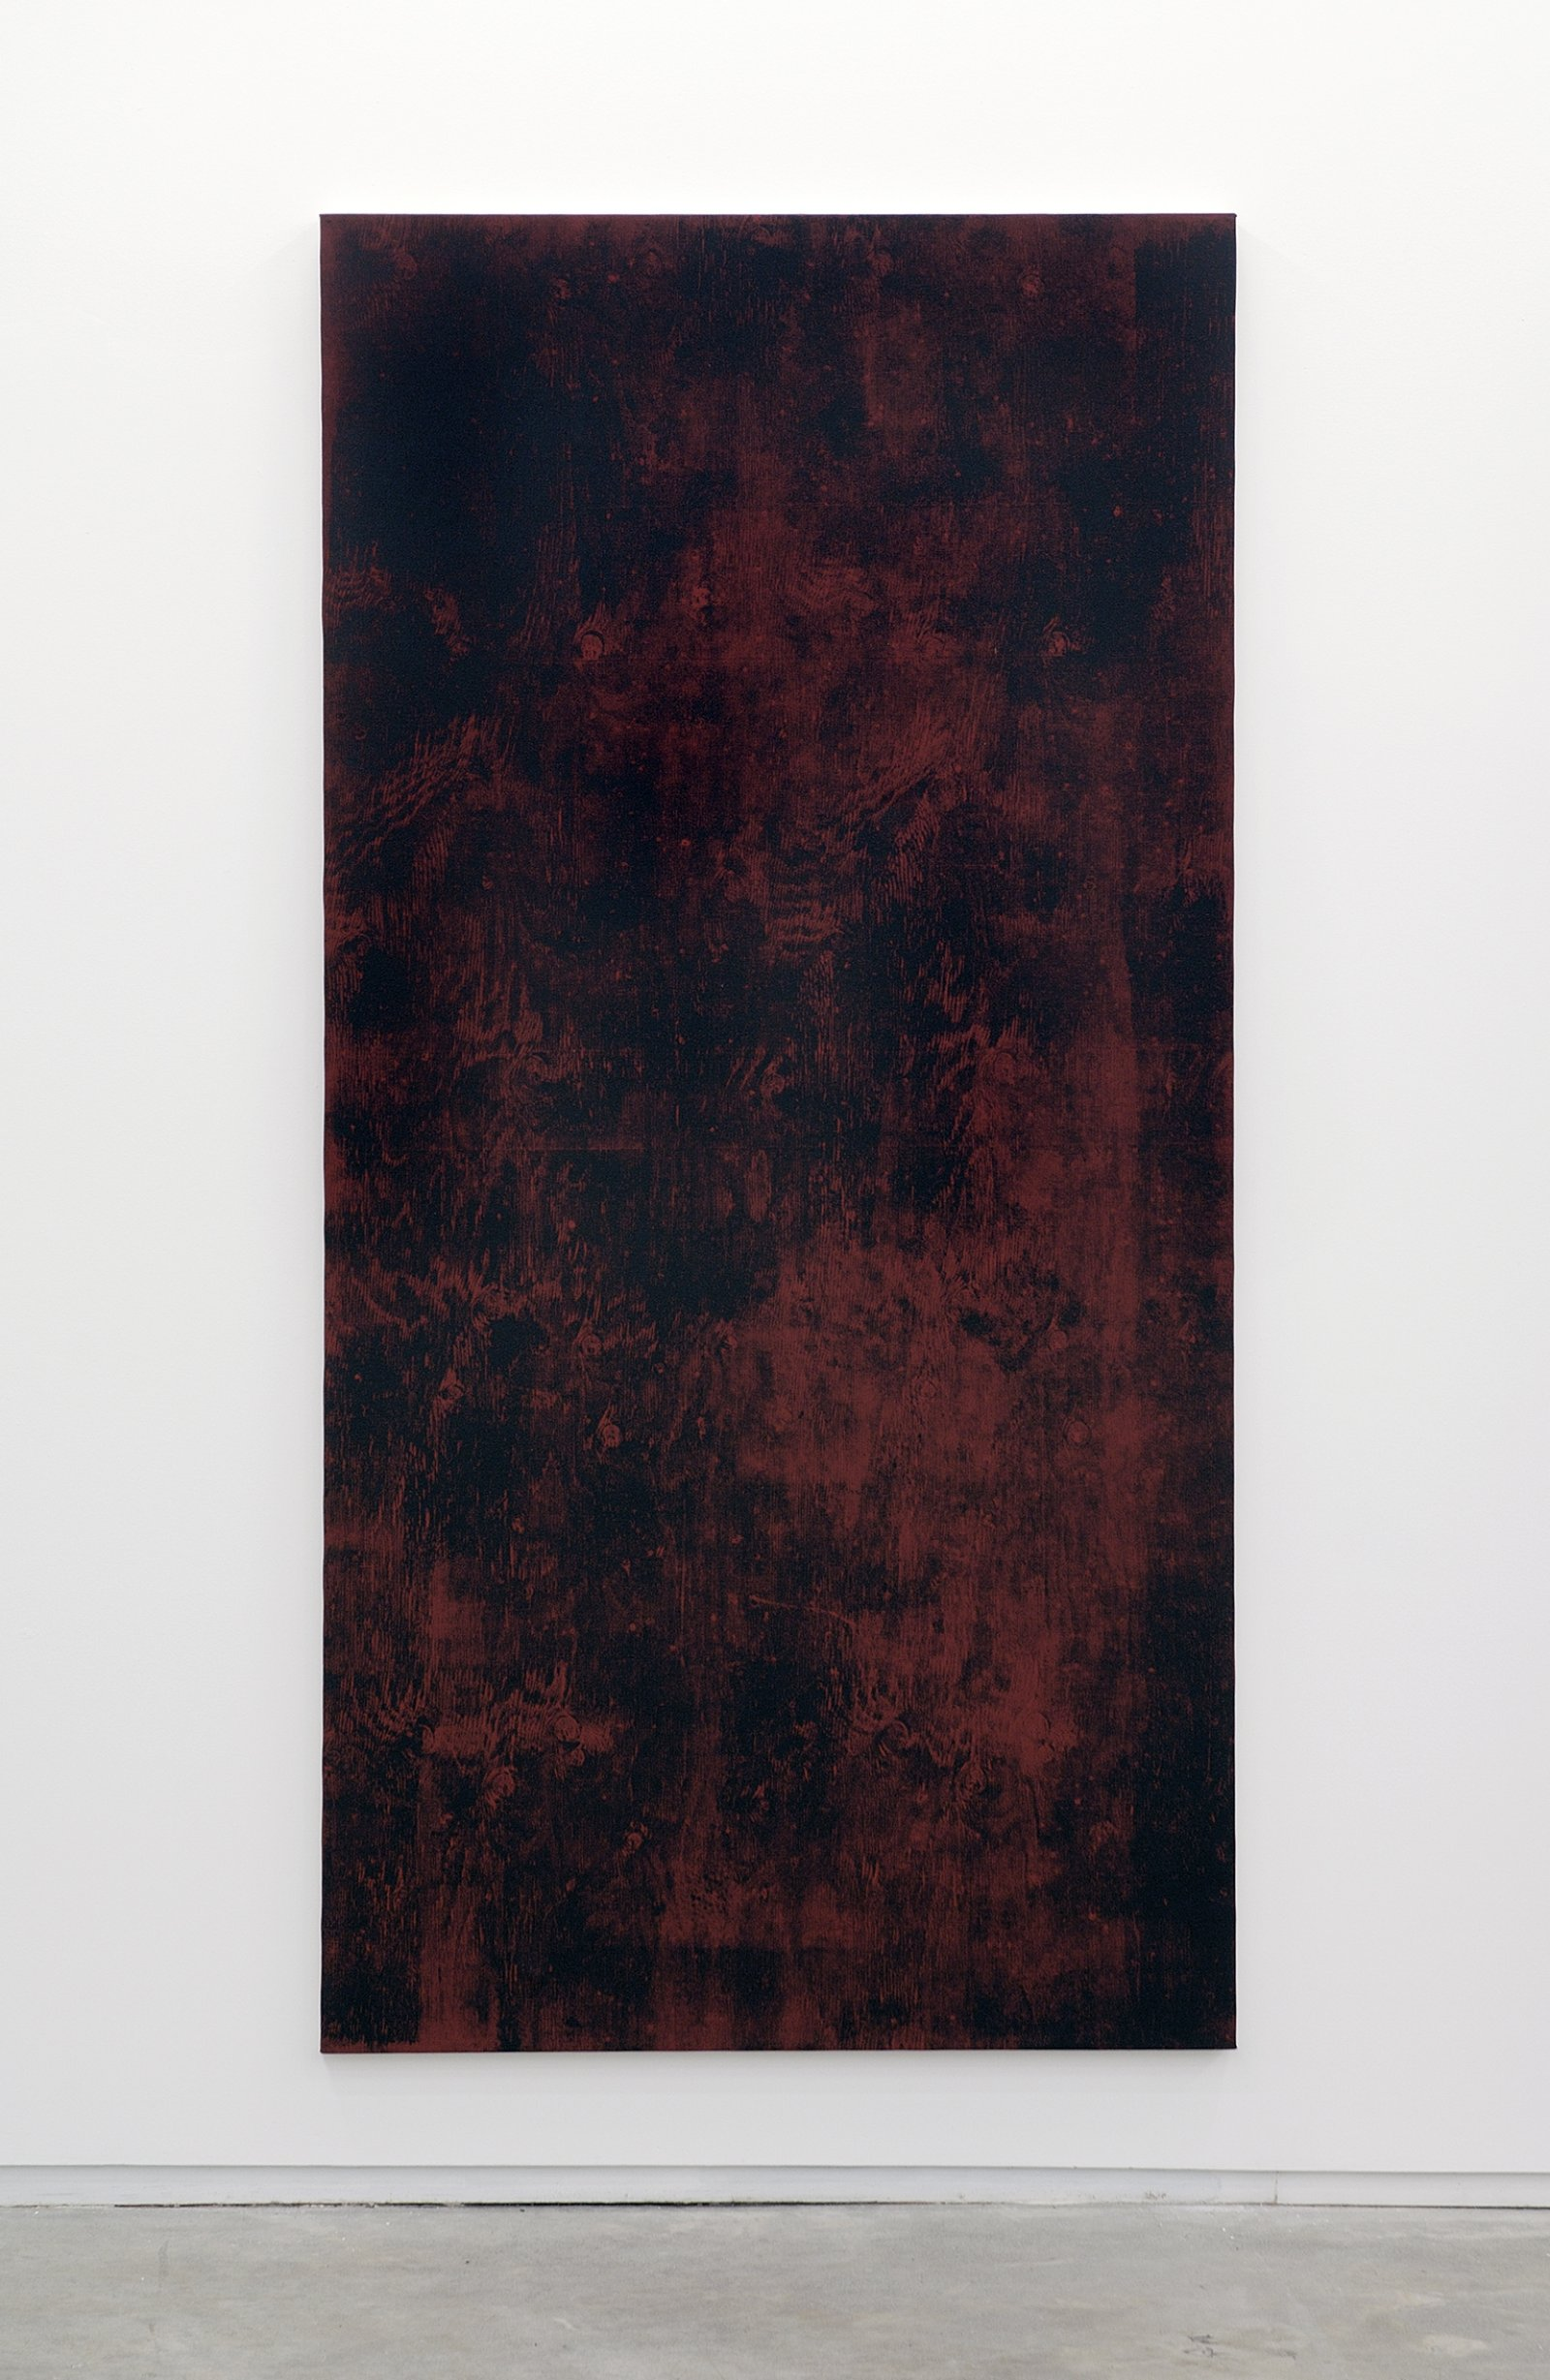 ​​Ian Wallace, Untitled (Monoprint with Burgundy), 1990, acrylic on canvas, 90 x 20 in. (229 x 51 cm)​ by Ian Wallace